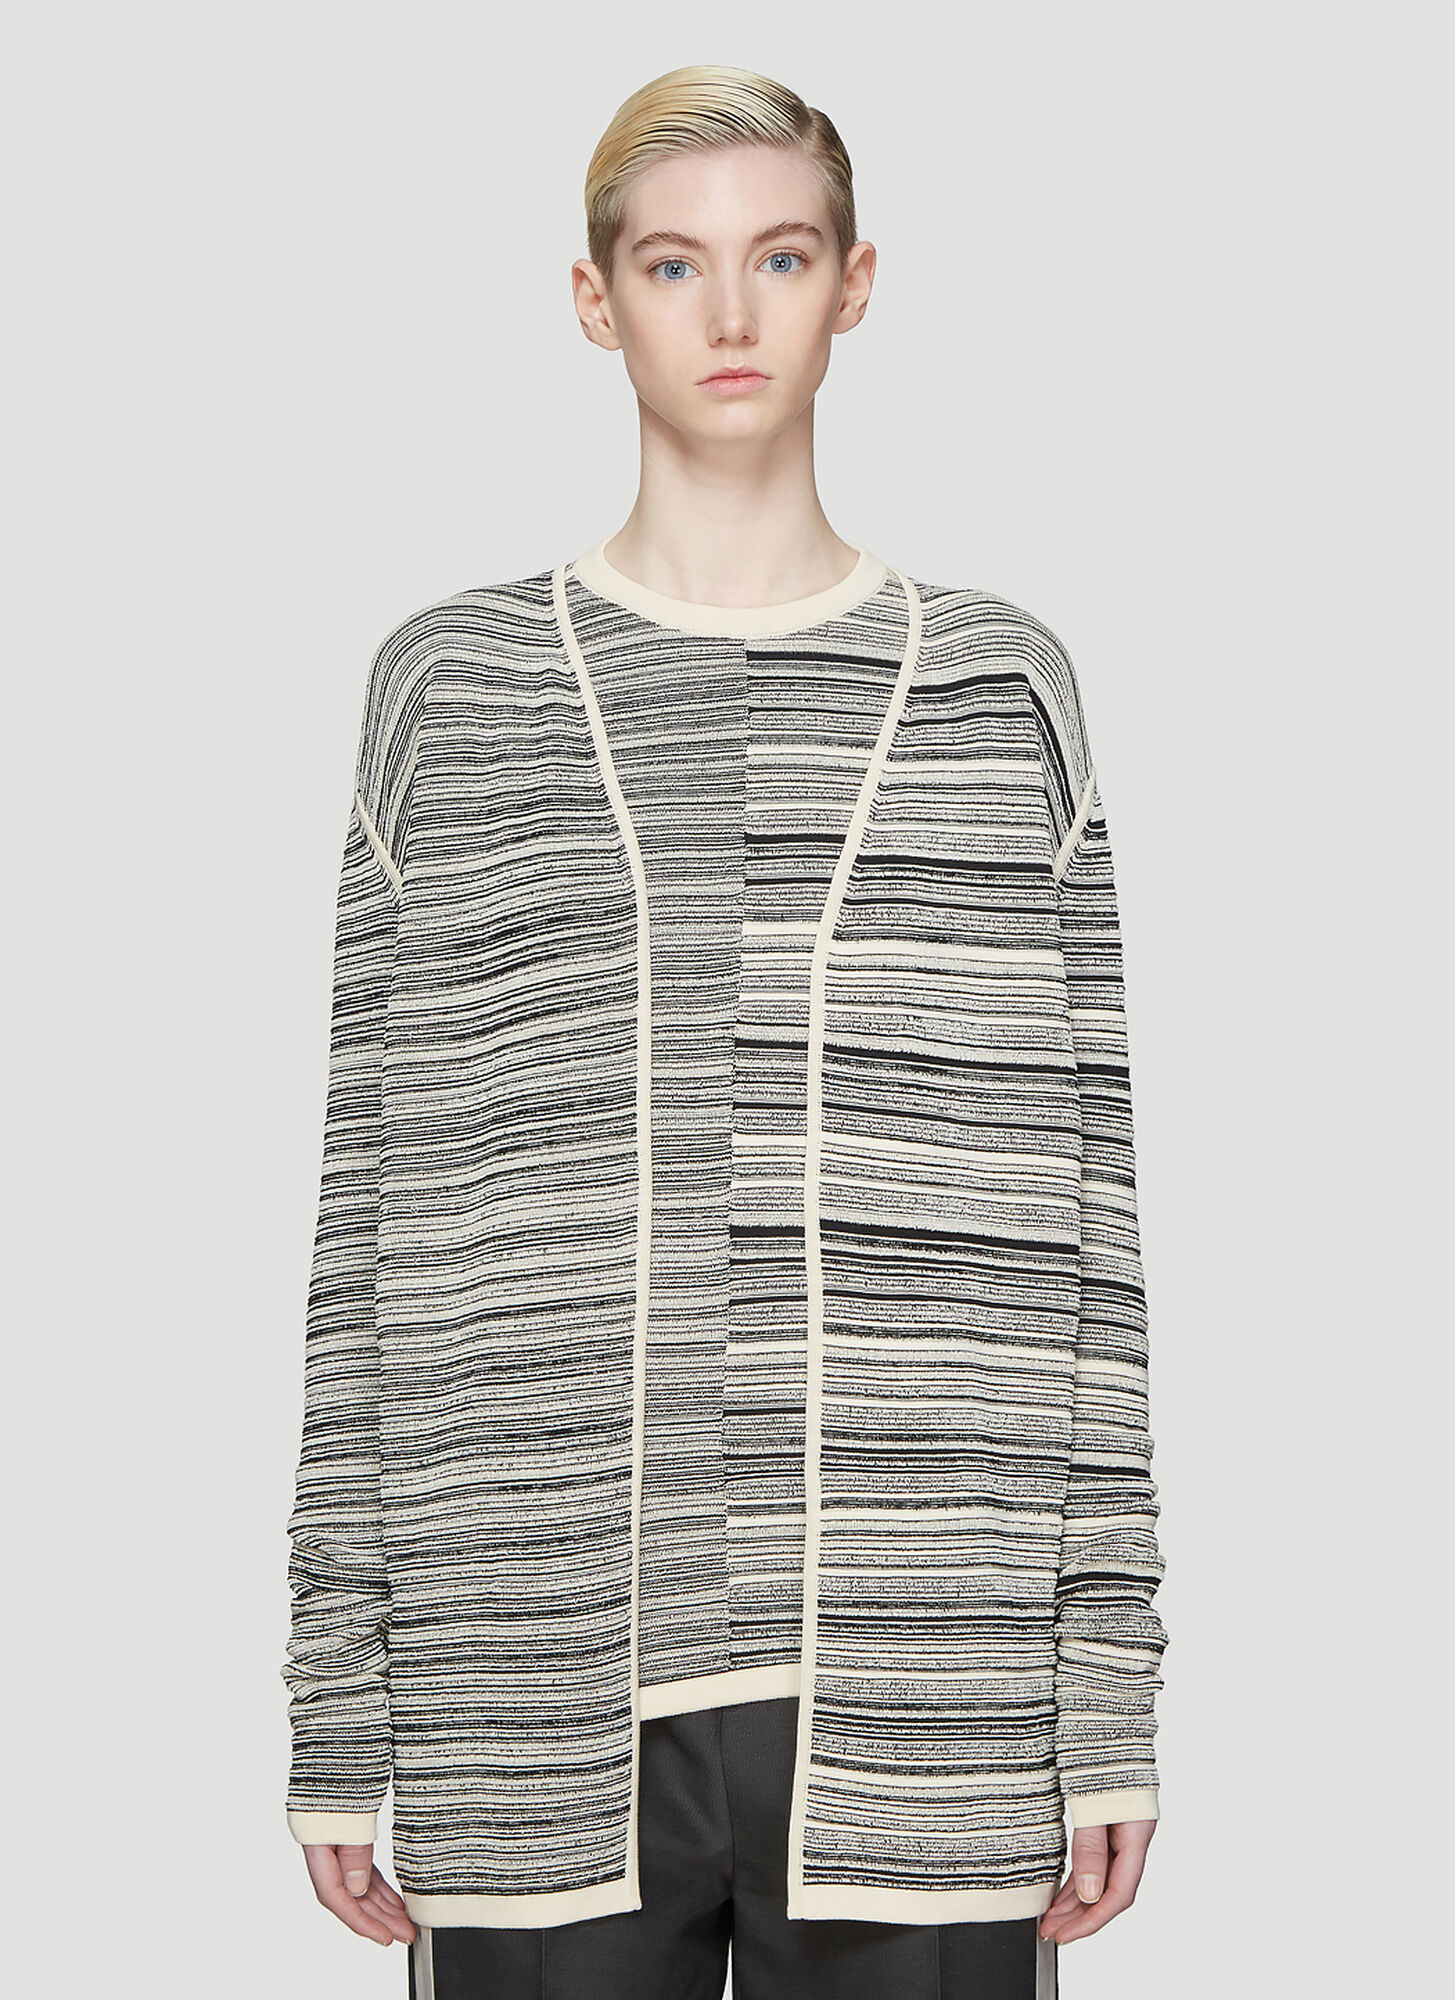 Rick Owens Dirti Cardi Jacket in Beige